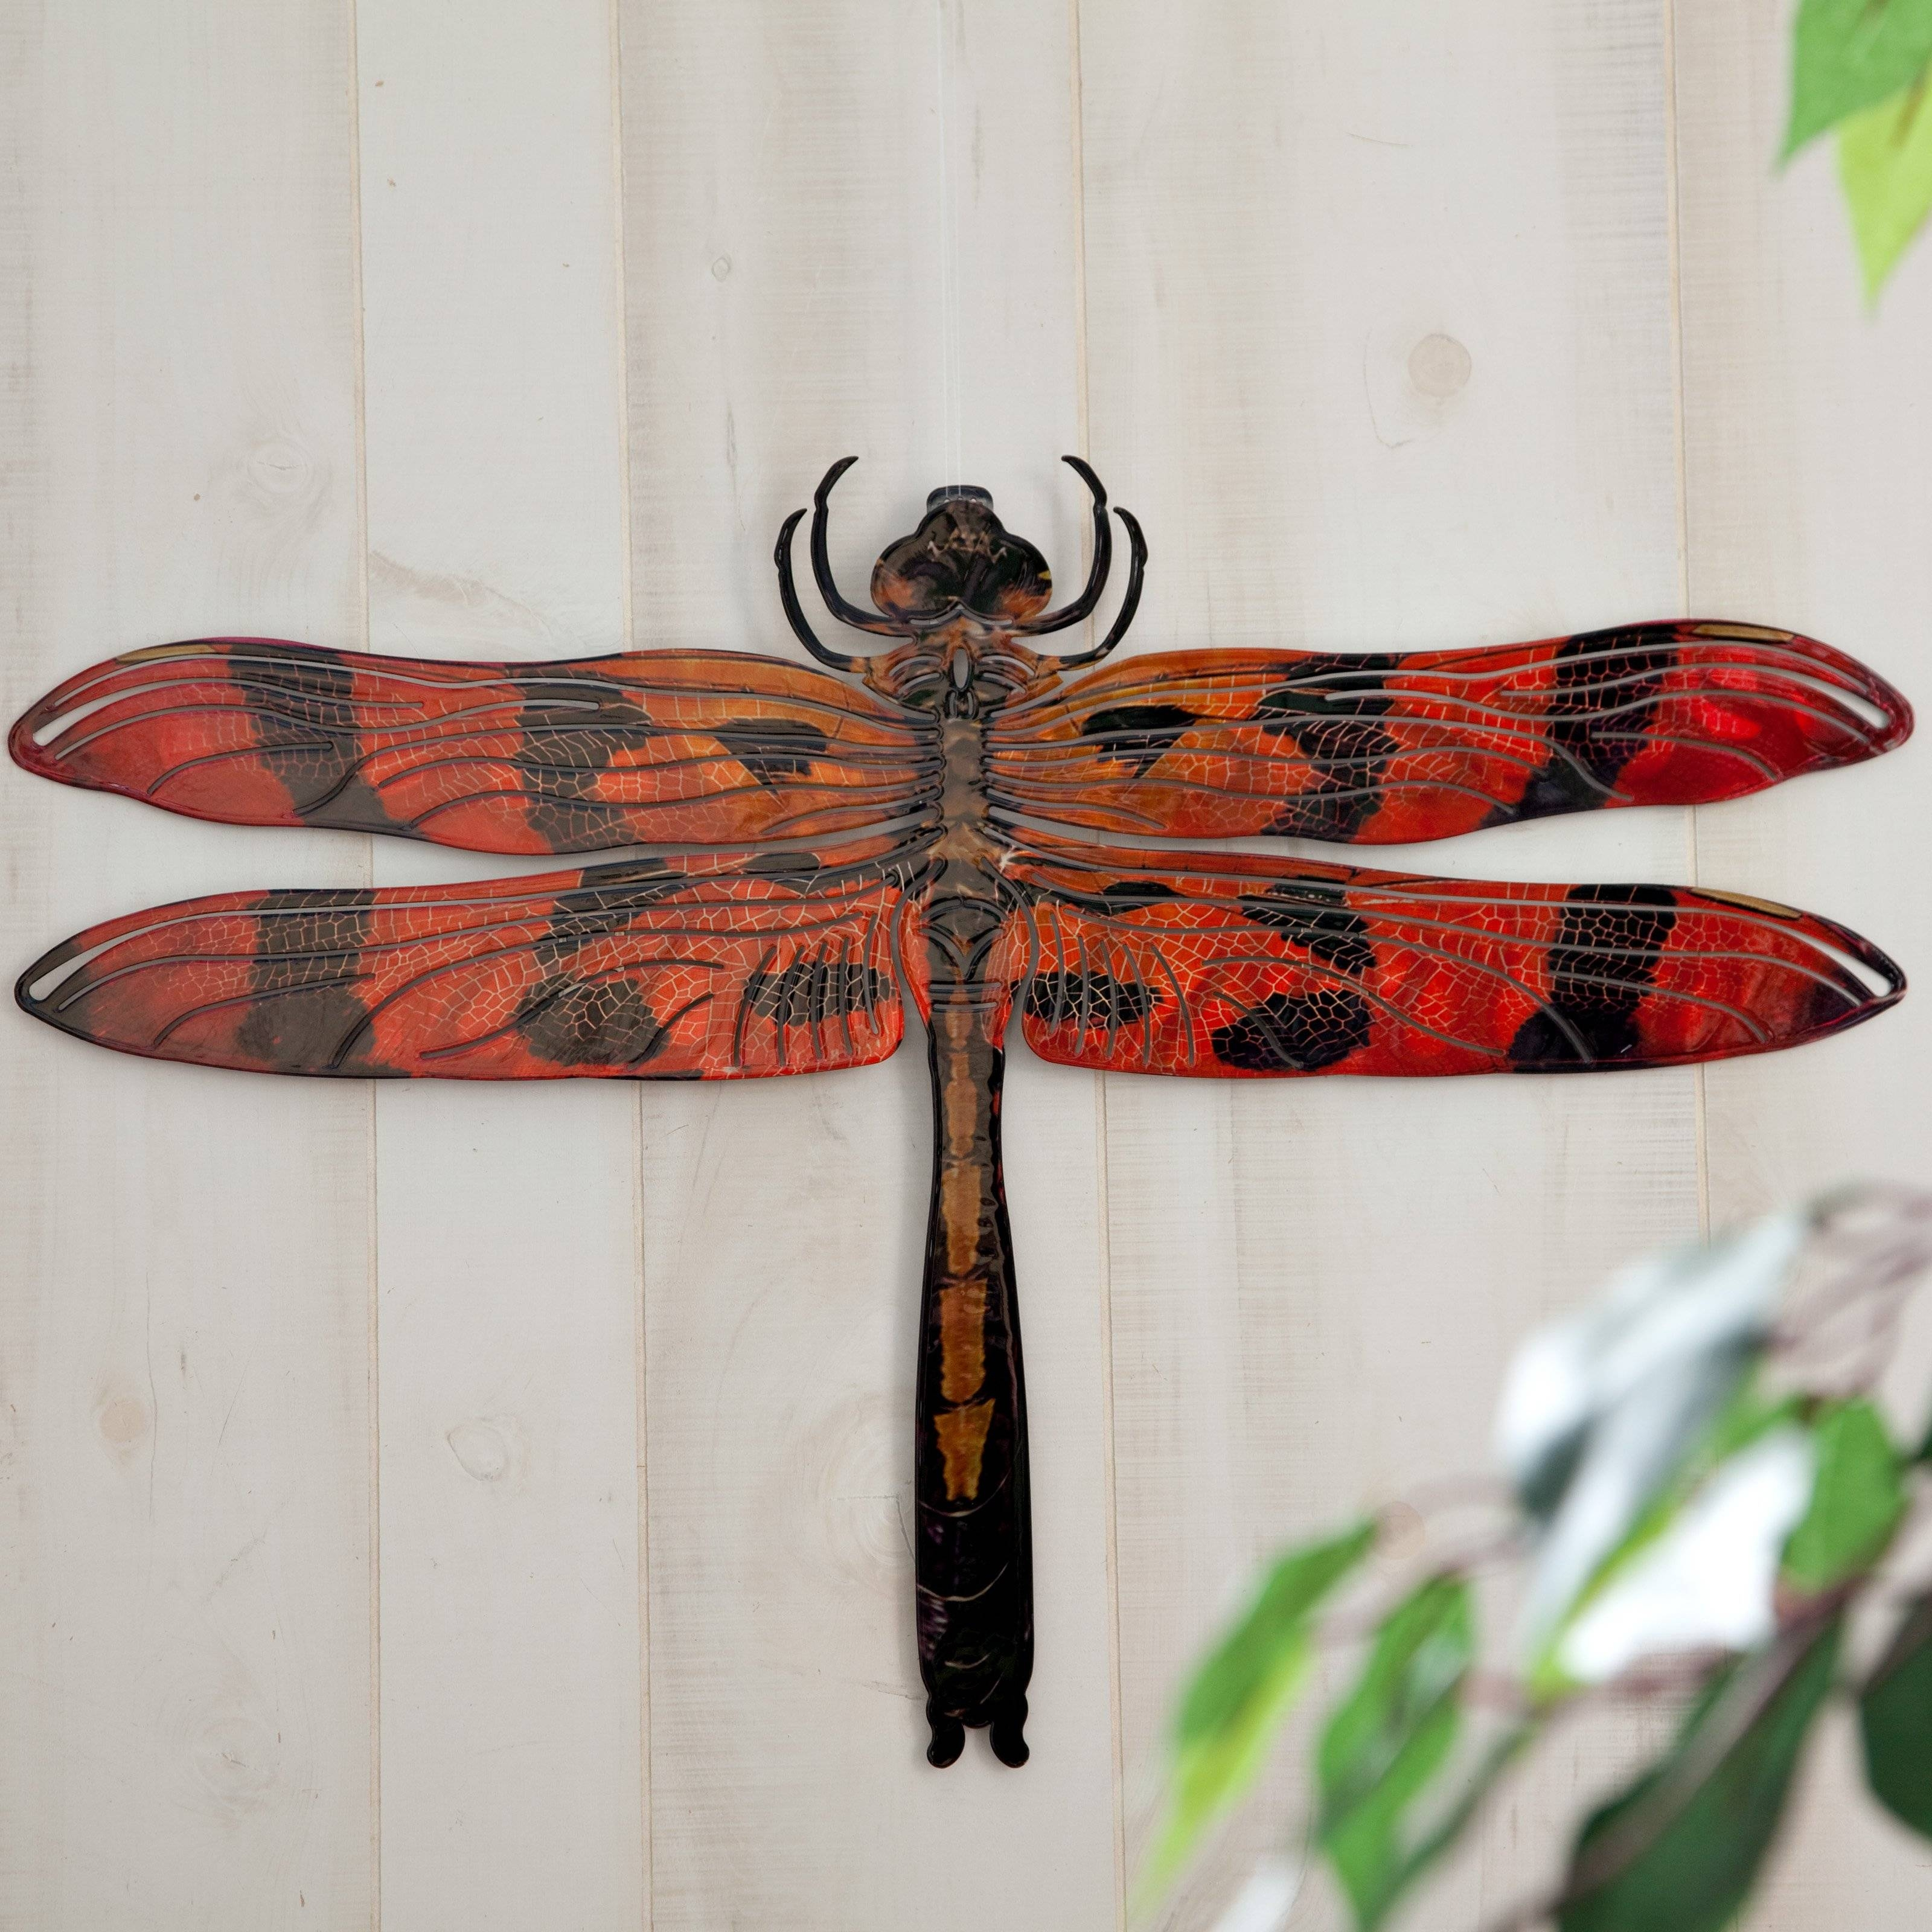 3D Dragonfly Metal Outdoor Wall Art | Hayneedle With Most Current Dragonfly 3D Wall Art (Gallery 5 of 20)